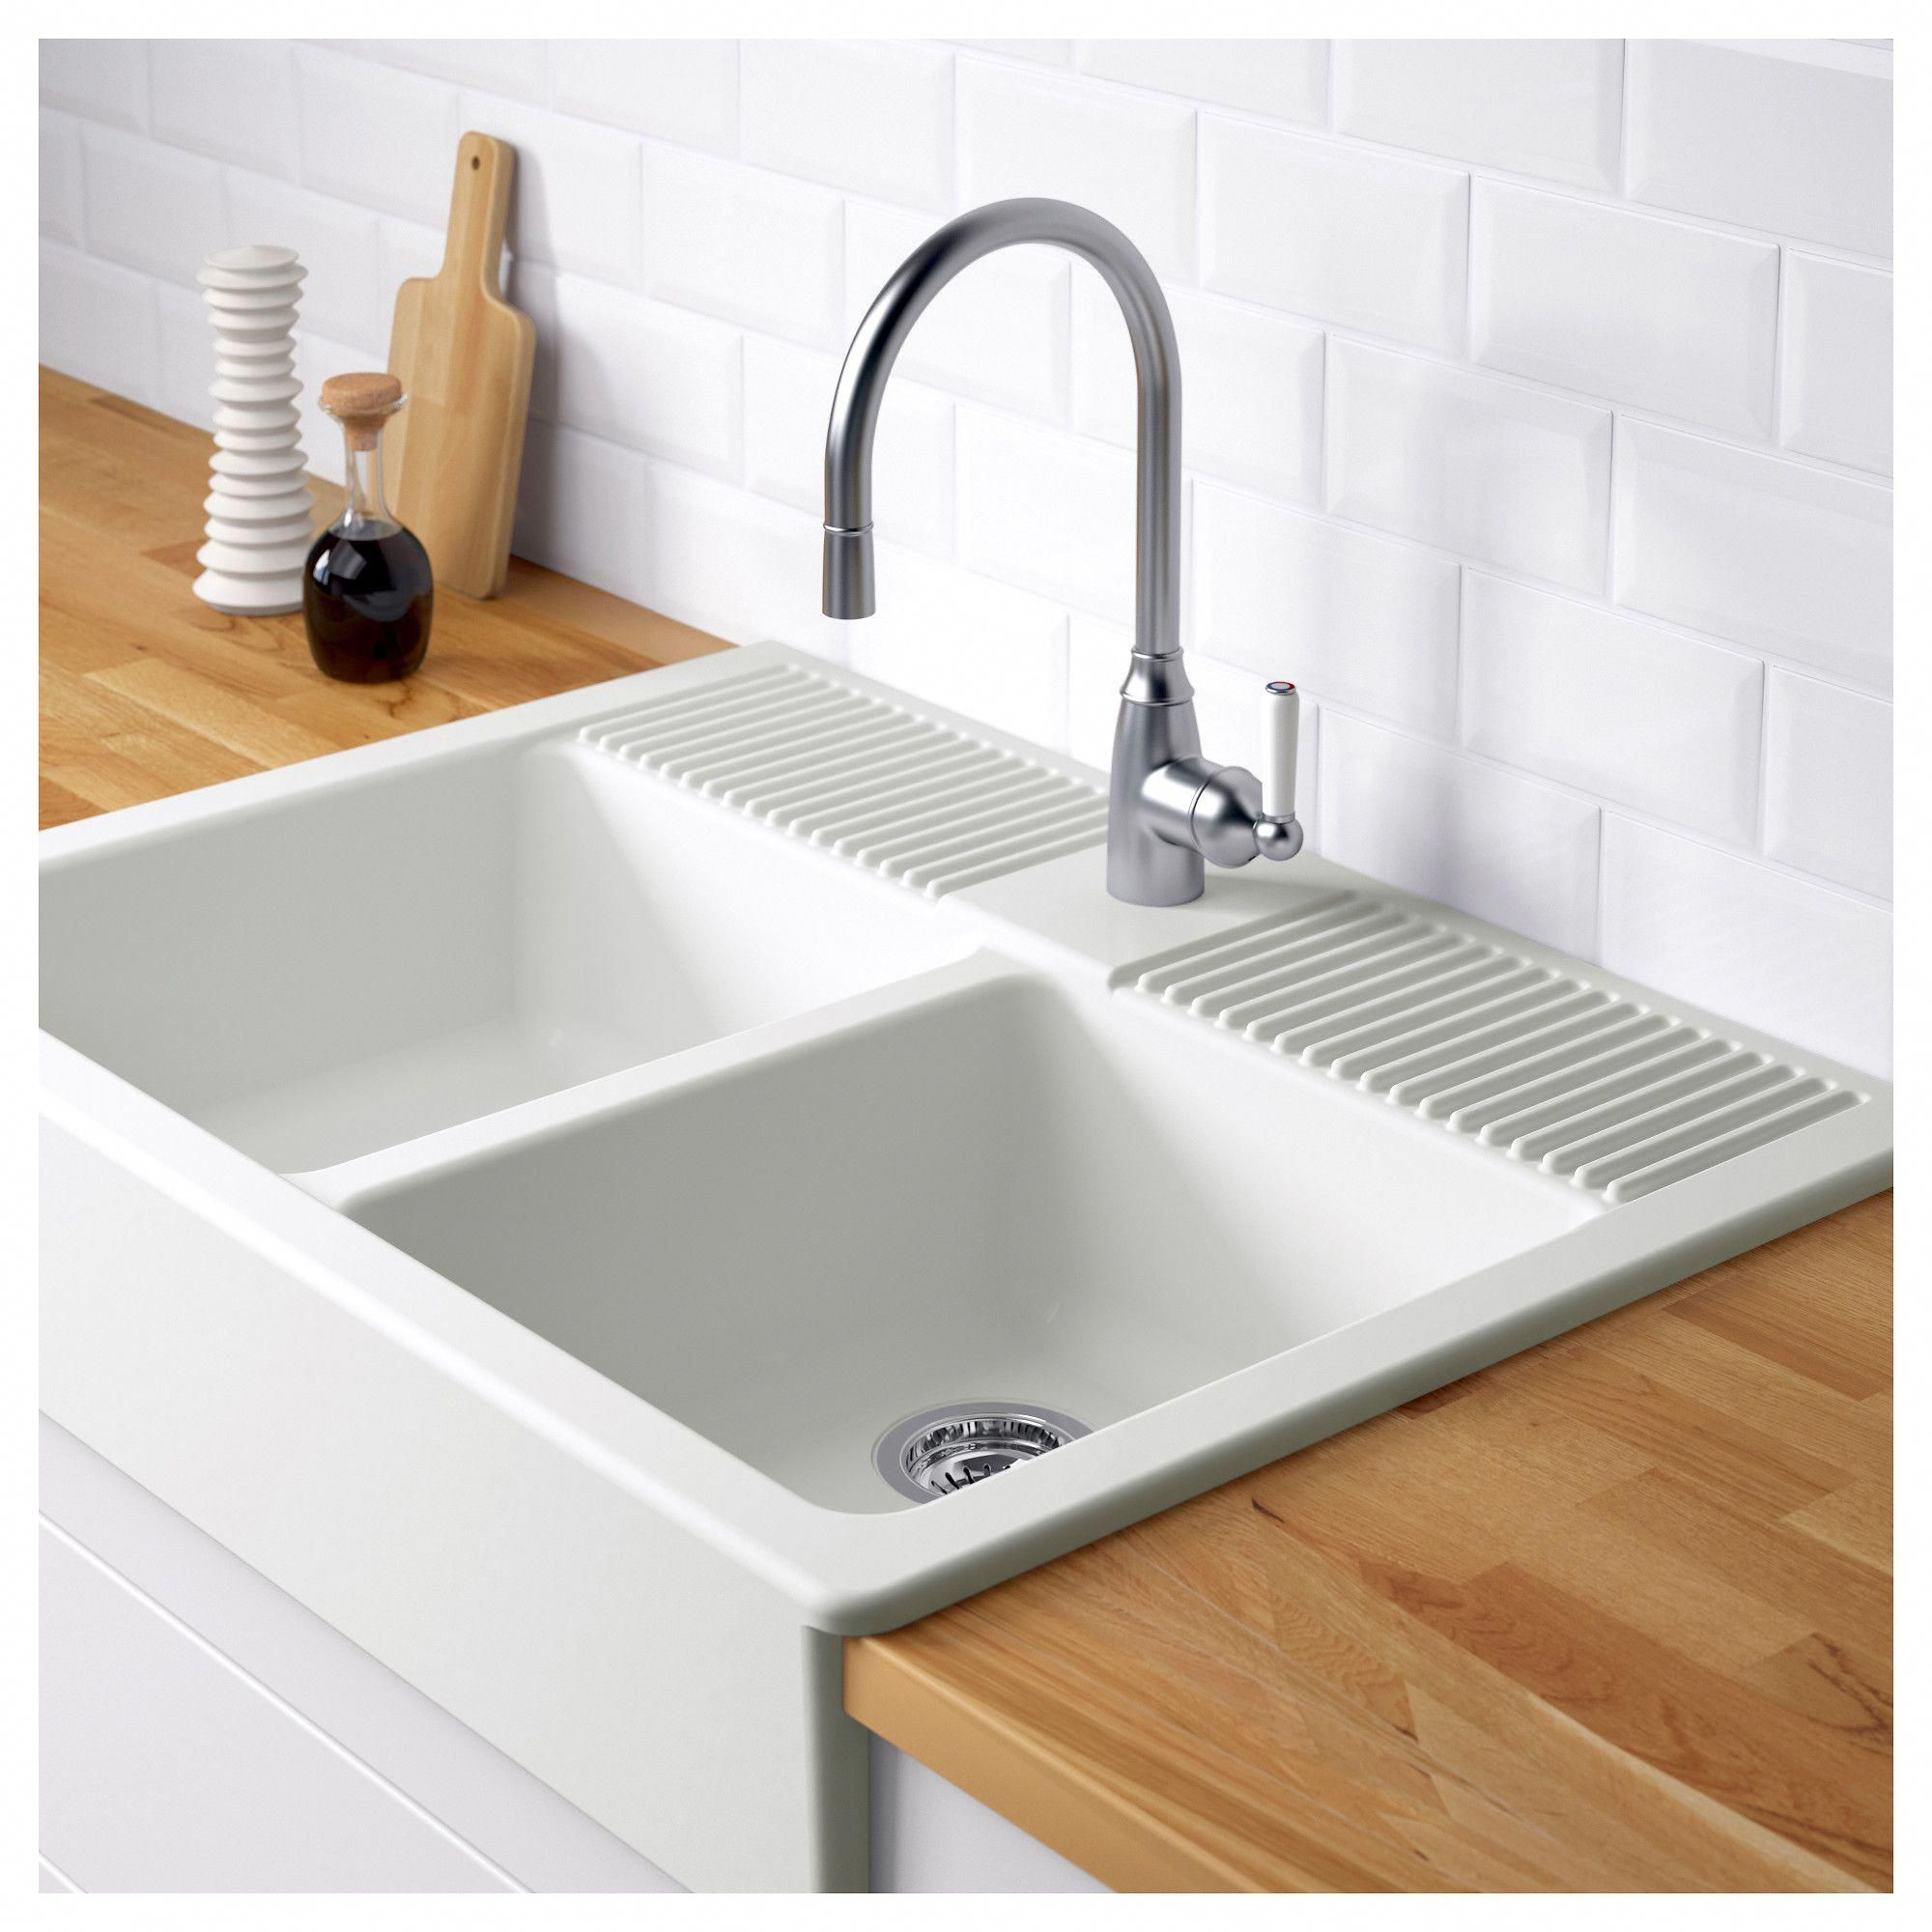 Ikea Domsjo Double Bowl 25 Year Guarantee Read About The